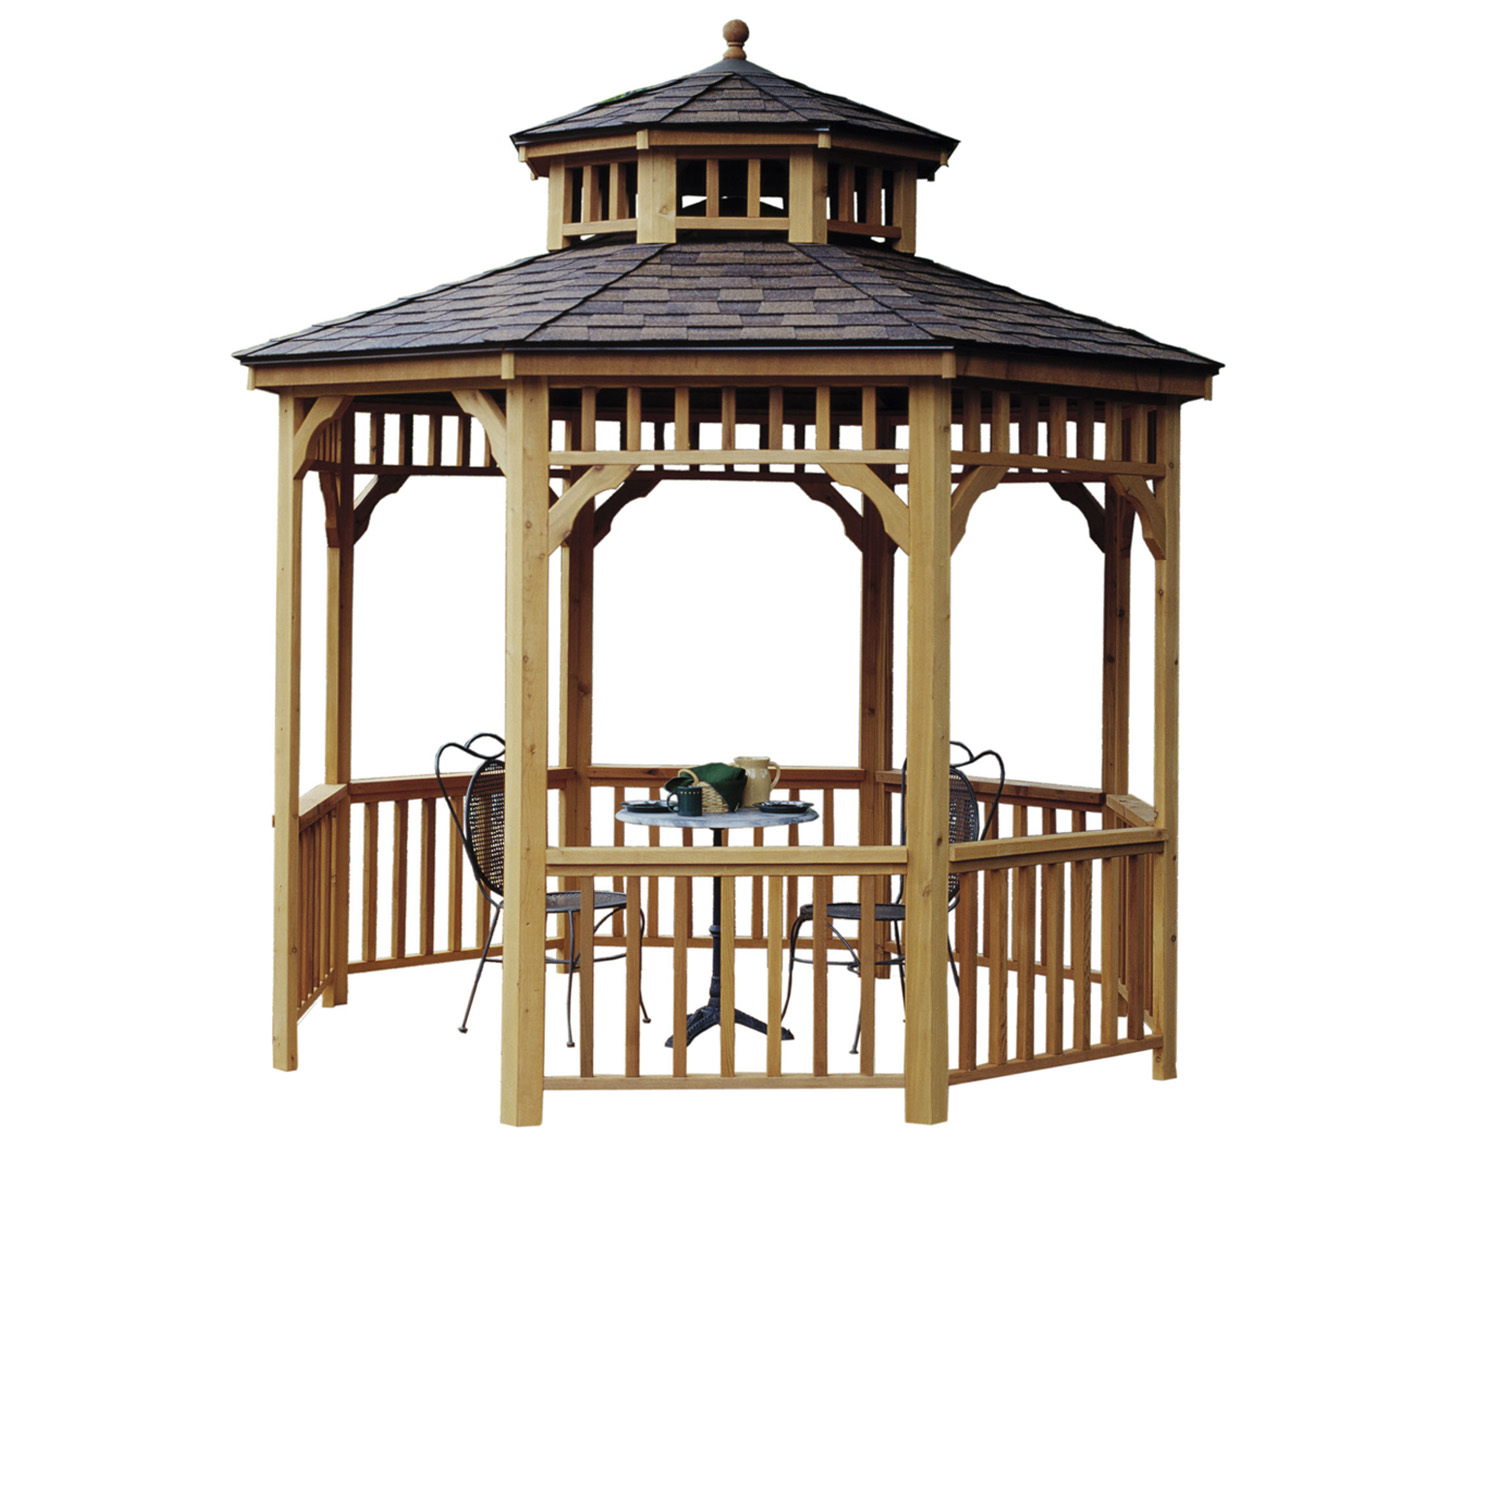 Seaside round gazebo 10ft heartland industries - Build rectangular gazebo guide models ...